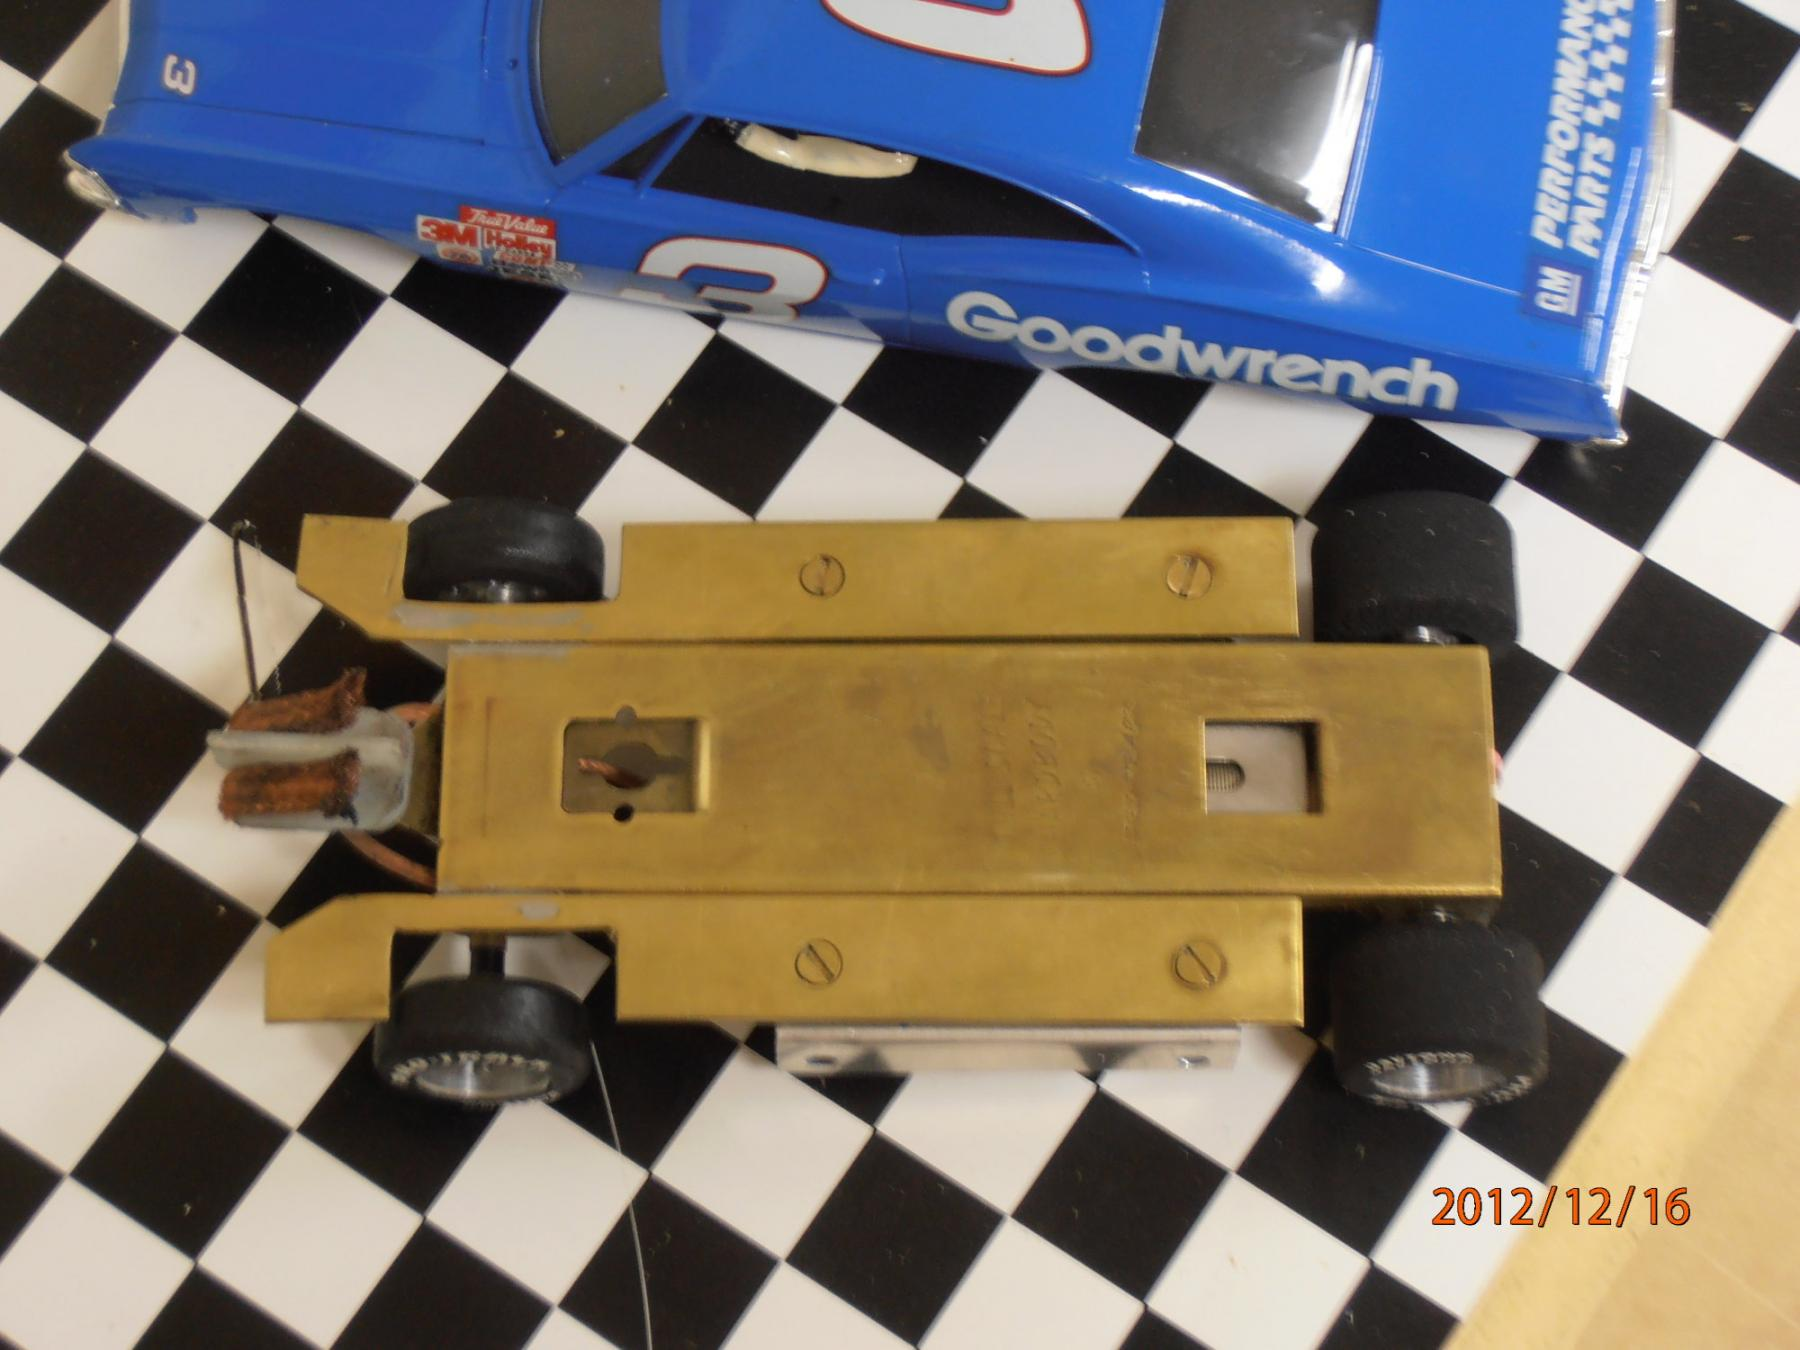 67 Chevy ProTrack Chassis Bottom.jpg